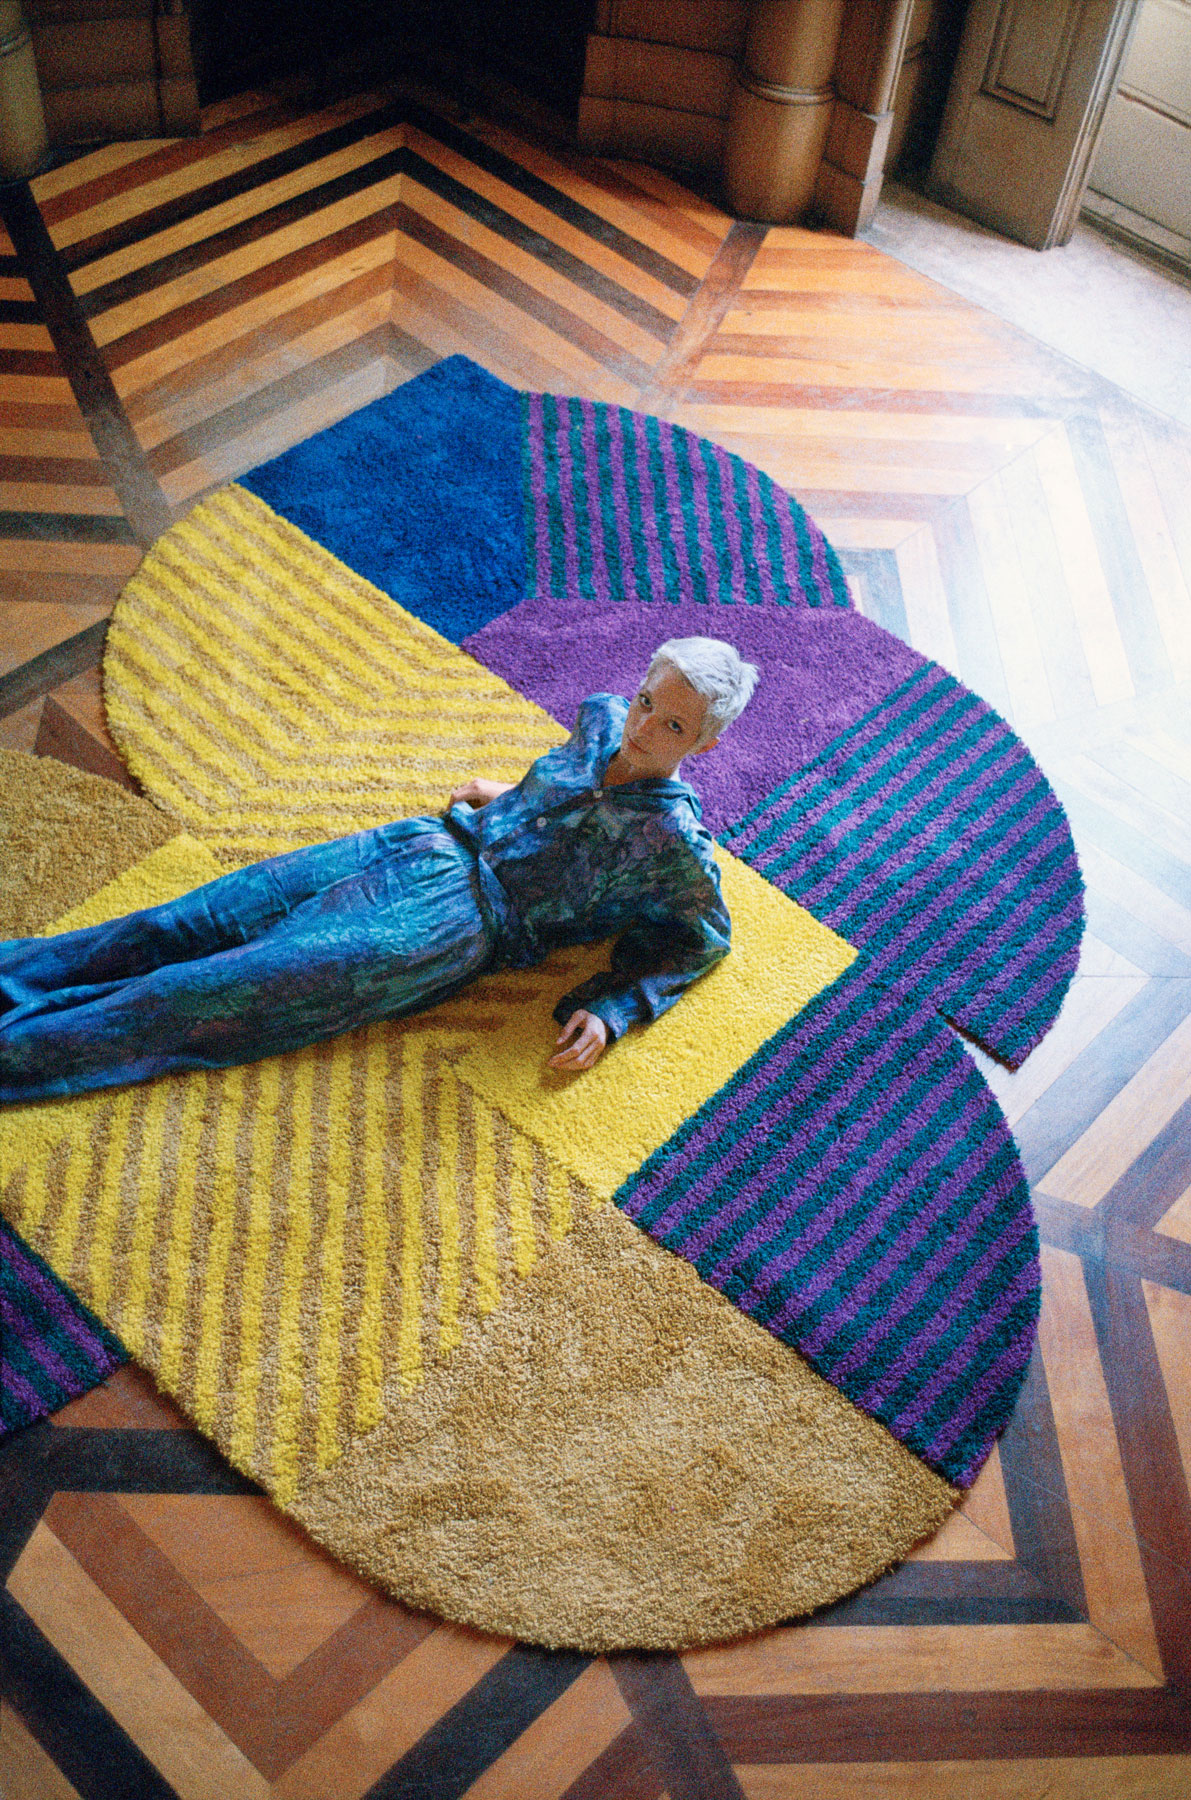 Ikea Rug Colorful: IKEA's Latest Line Is Crazy Colorful—Here Are Our Top